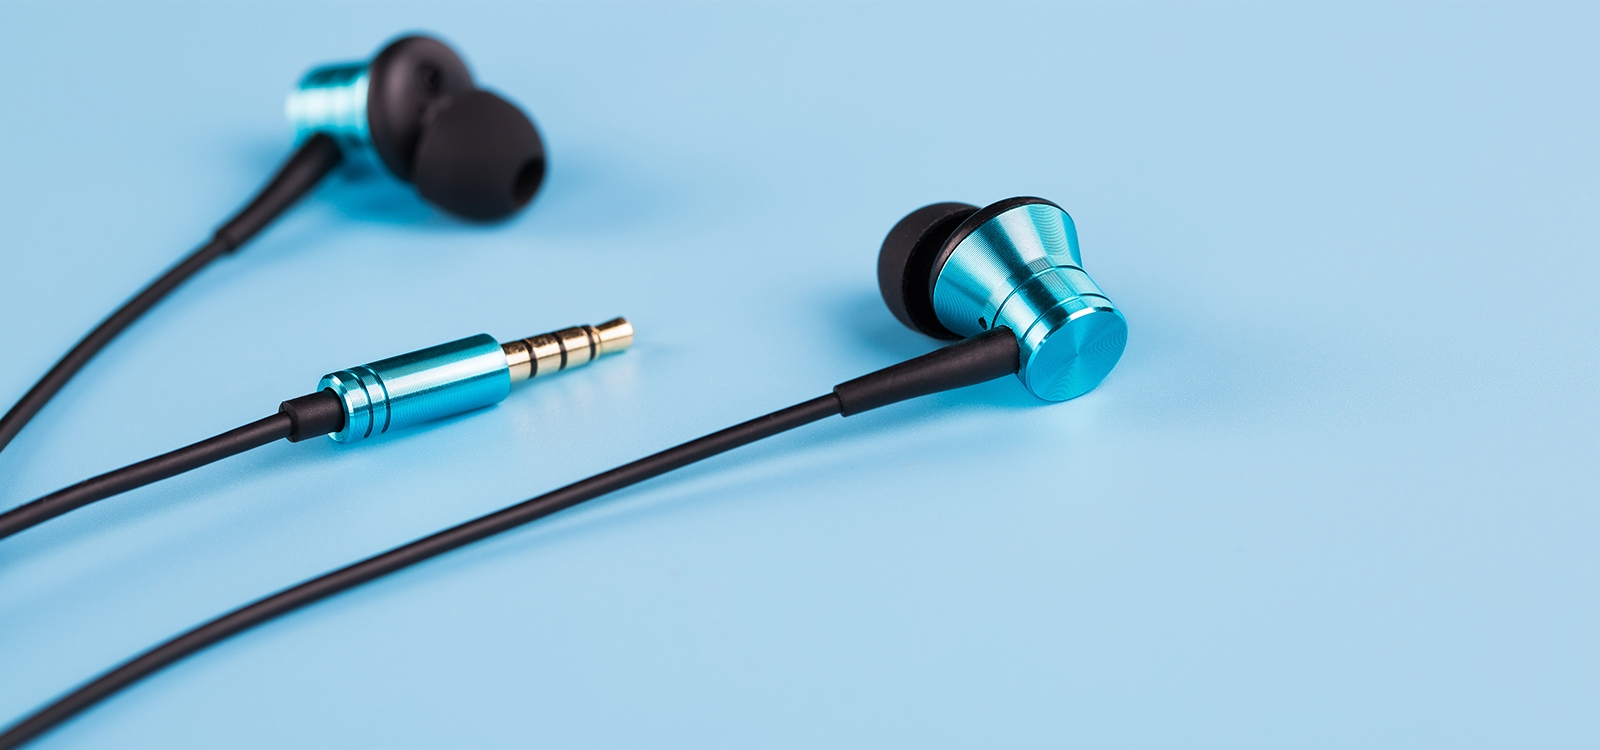 1MORE E1009 Piston Fit In-Ear Headphones